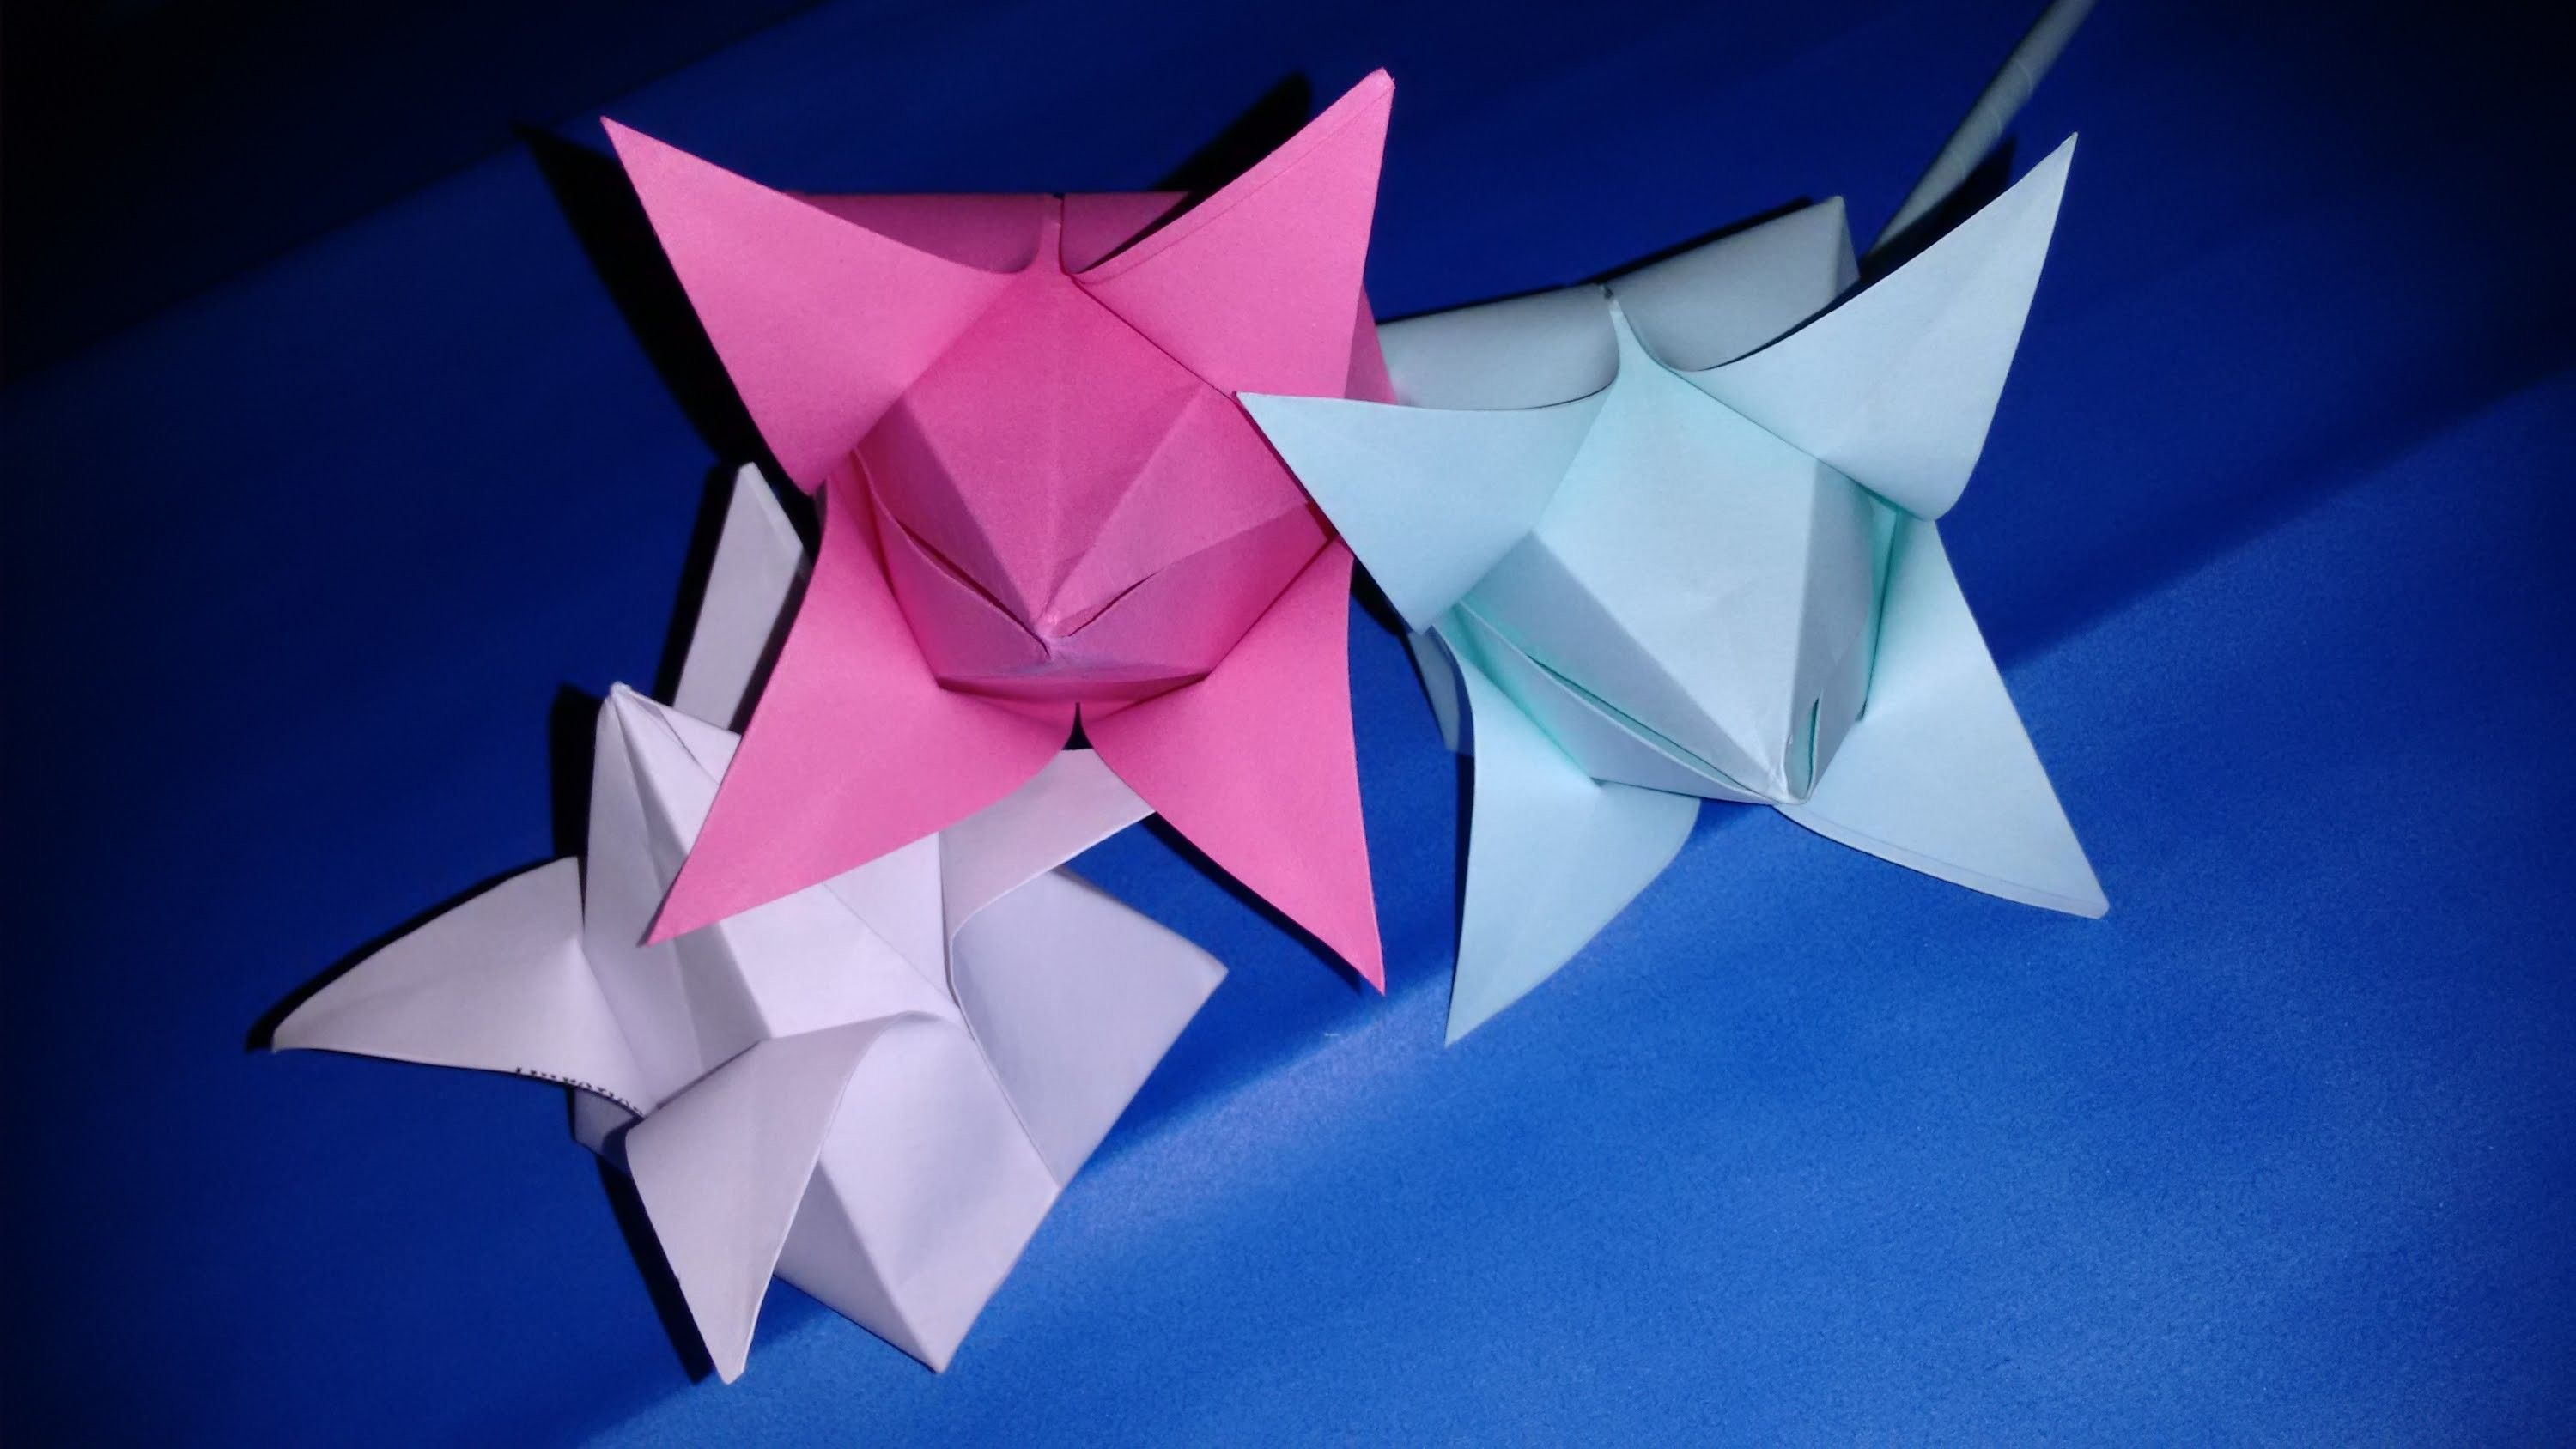 How To Make Lotus Flower By A4 Size Paper Diy Origami Art